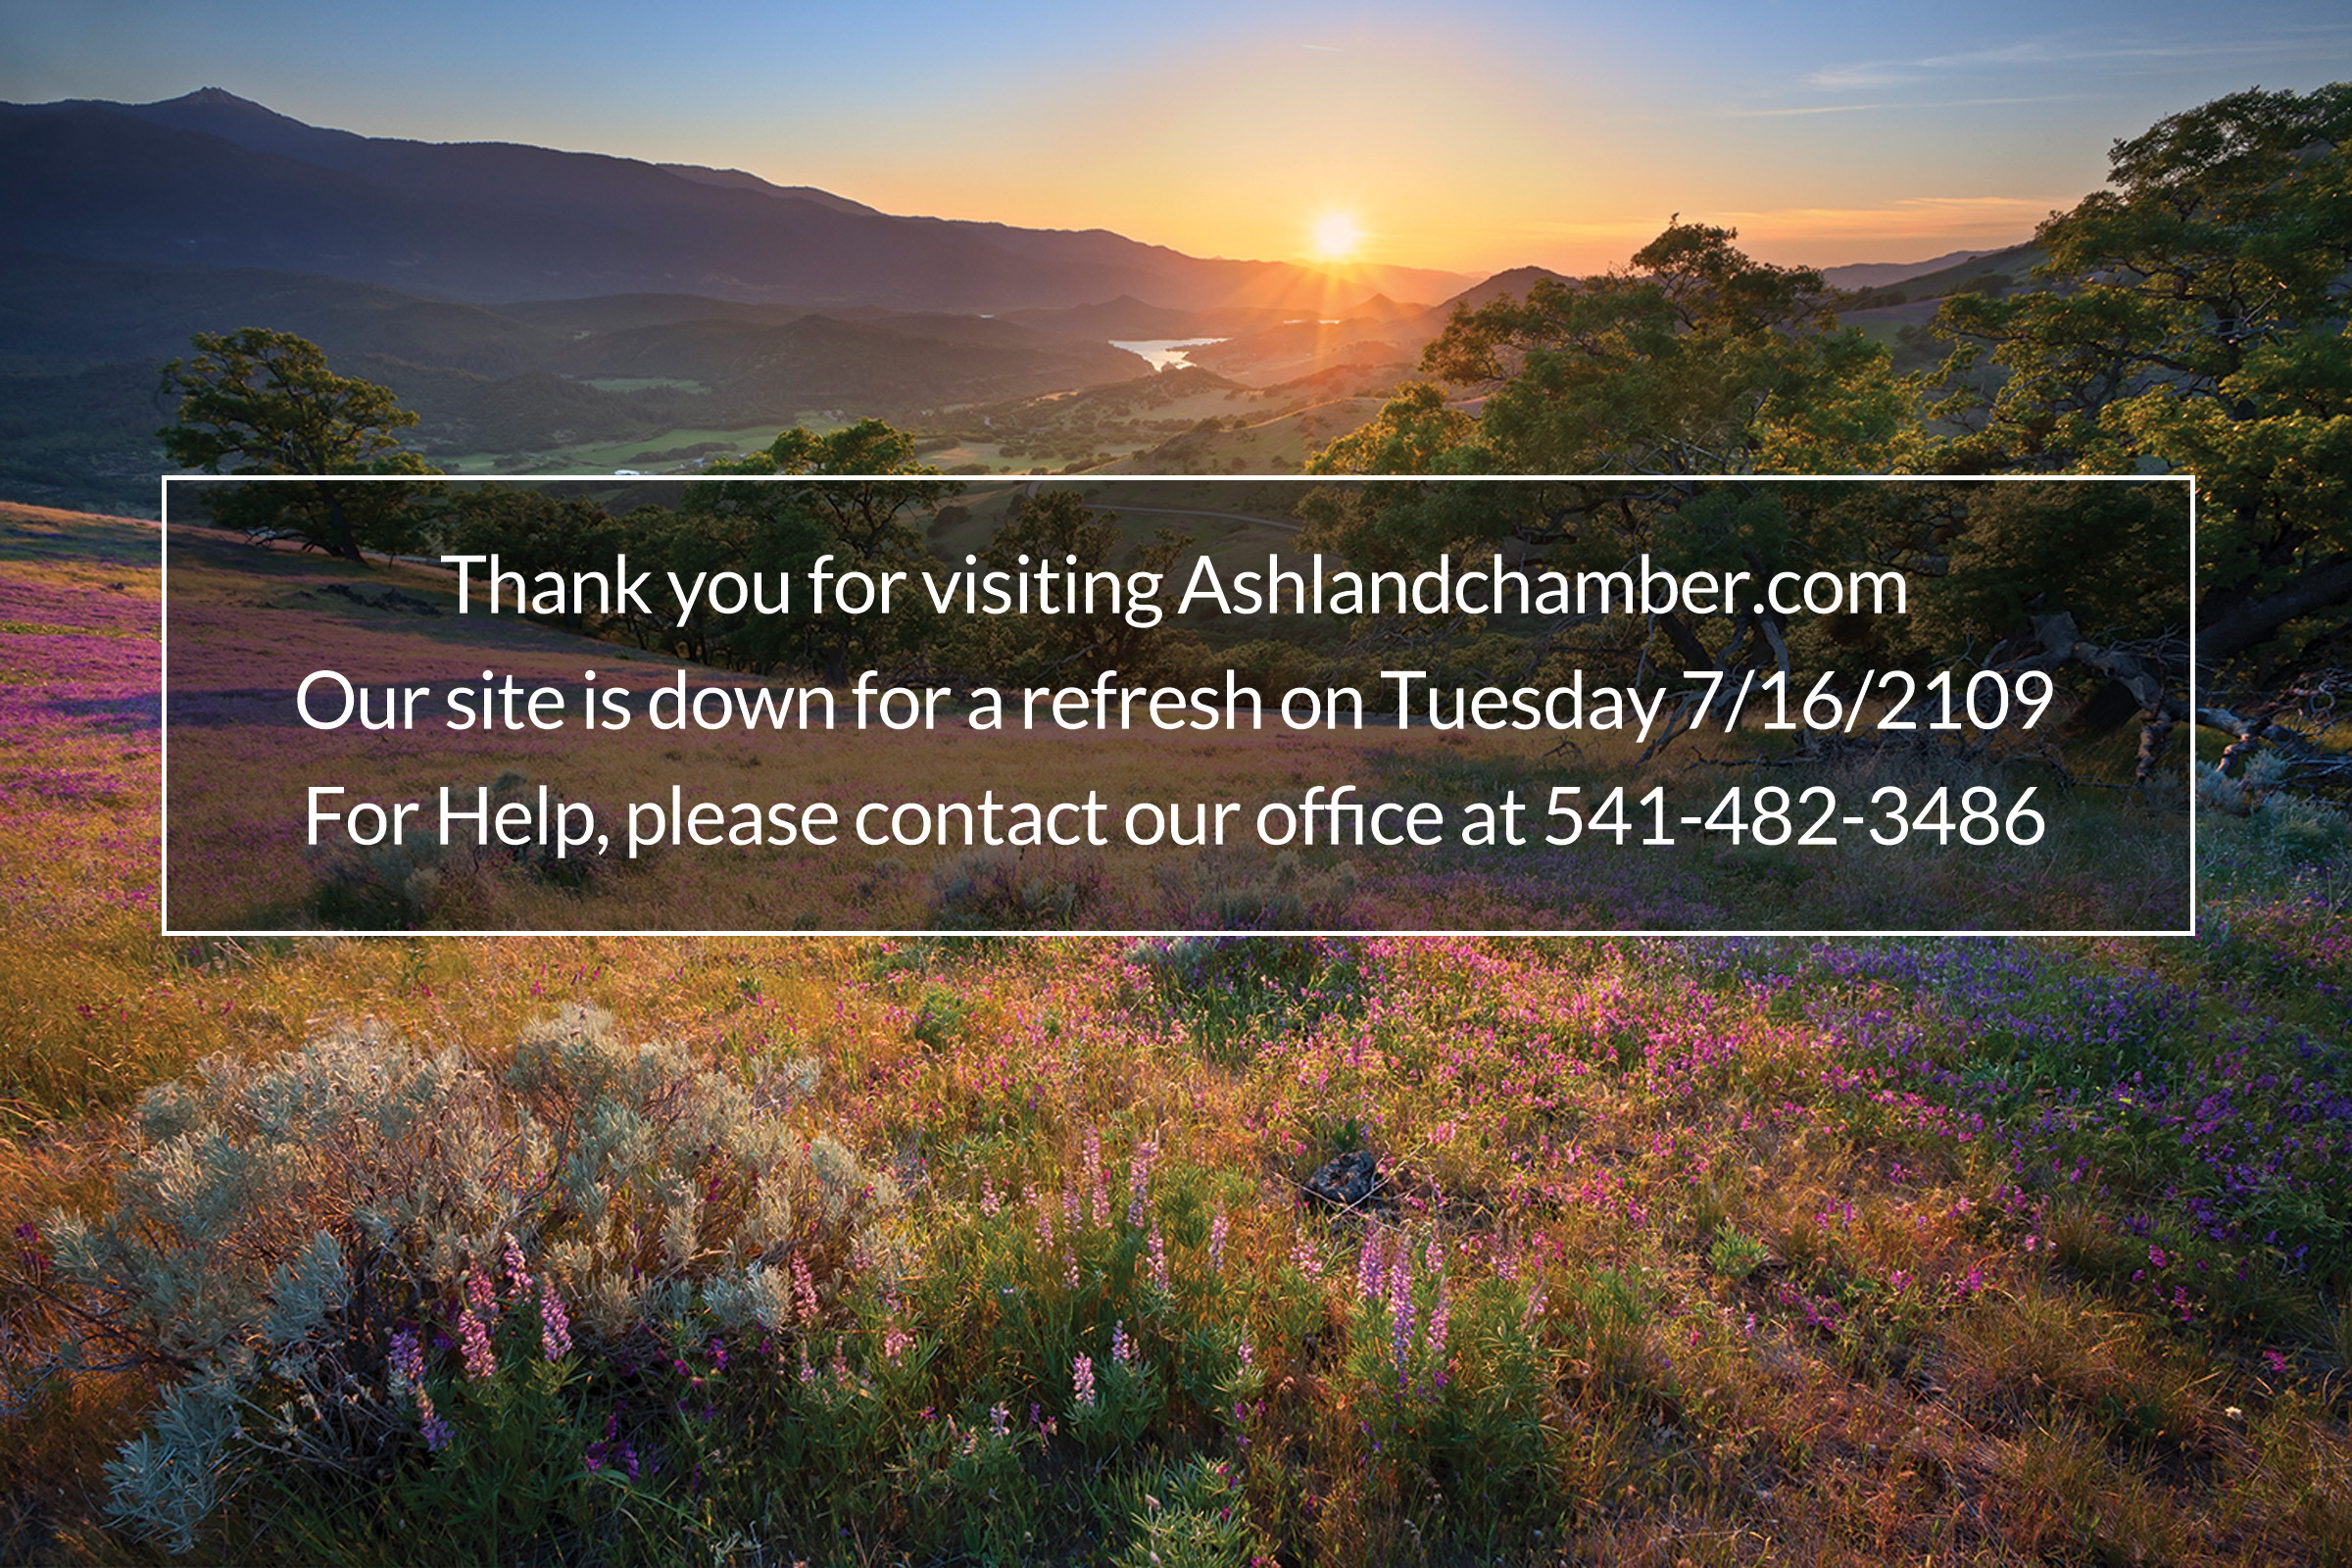 Thank you for visiting Ashlandchamber.com. Our site is down for a refresh on Tuesday 7/16/2109. For Help, please contact our office at 541-482-3486